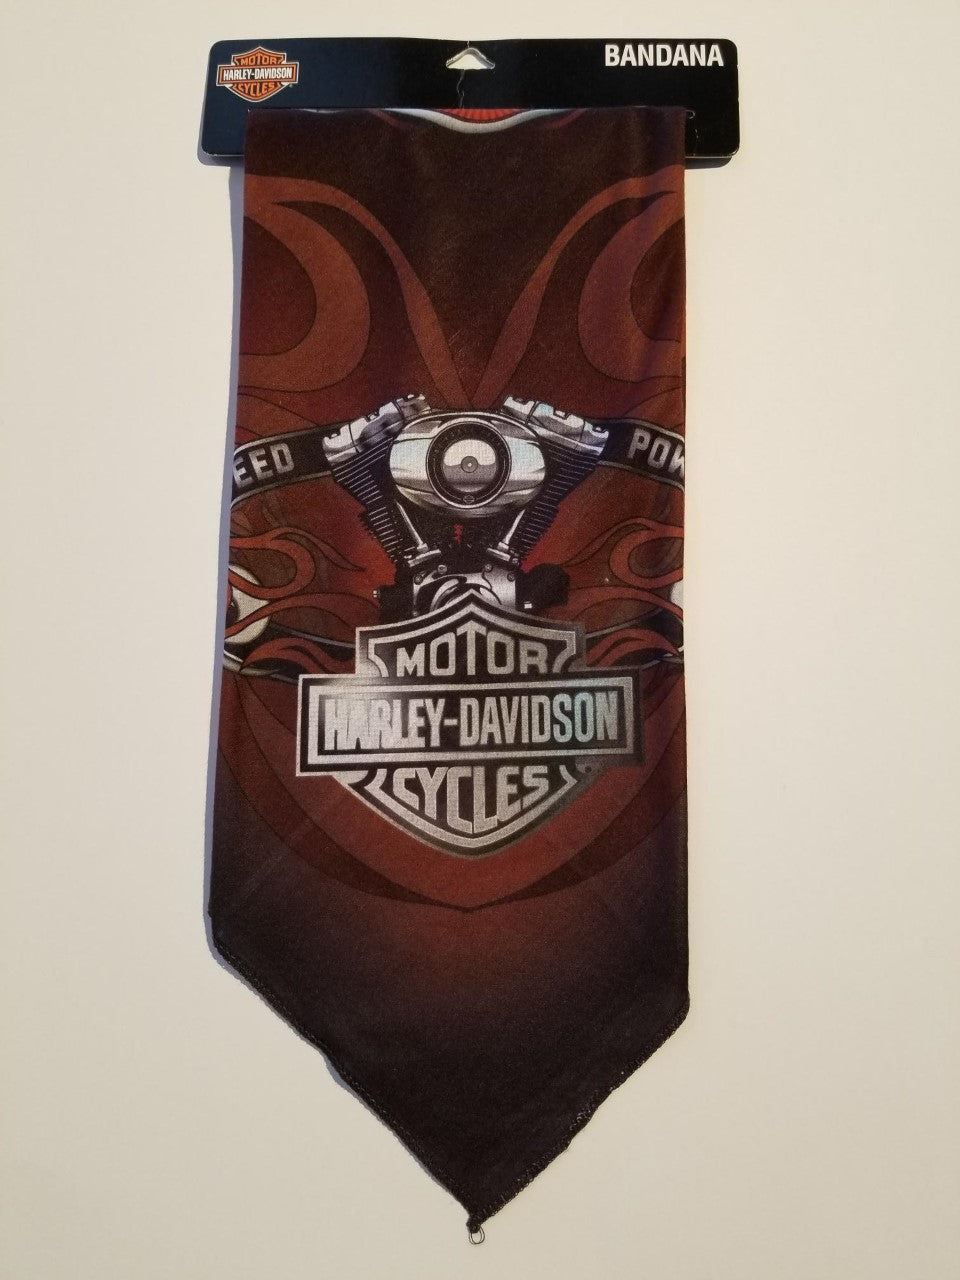 Harley-Davidson bandana speed and power sublimated